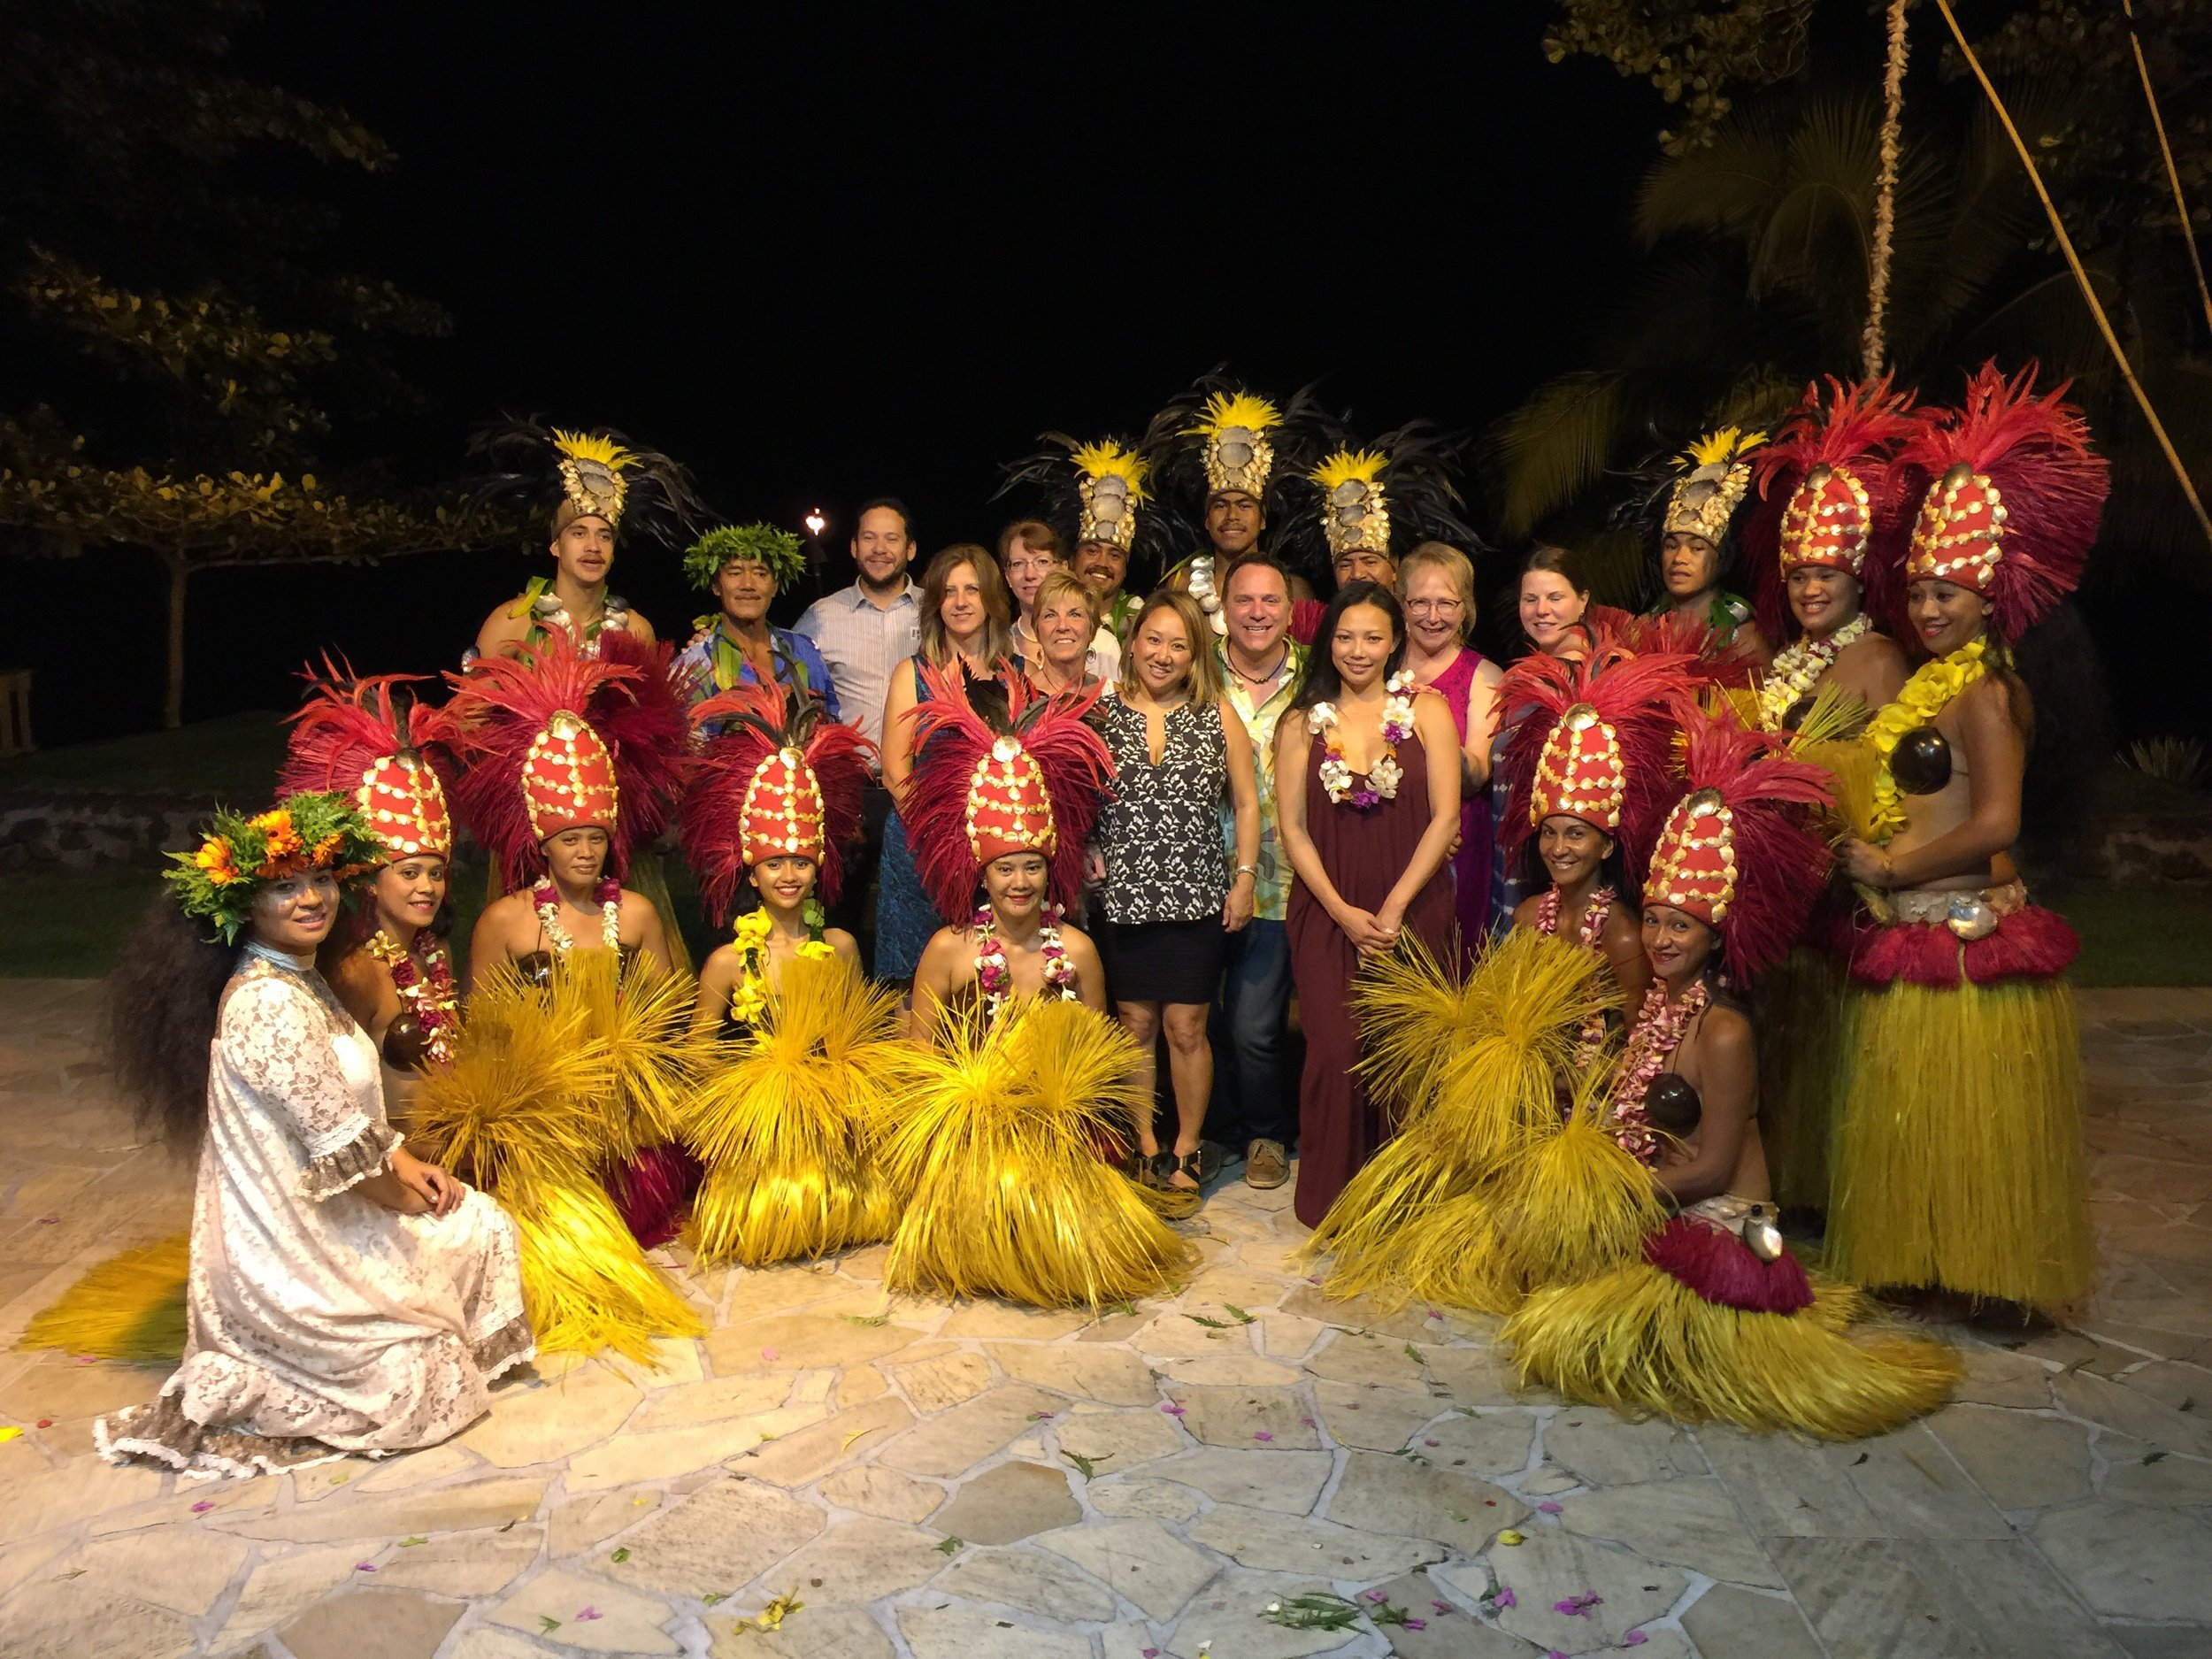 Our group joined the cast of the show at The Tahiti Pearl Beach Resort